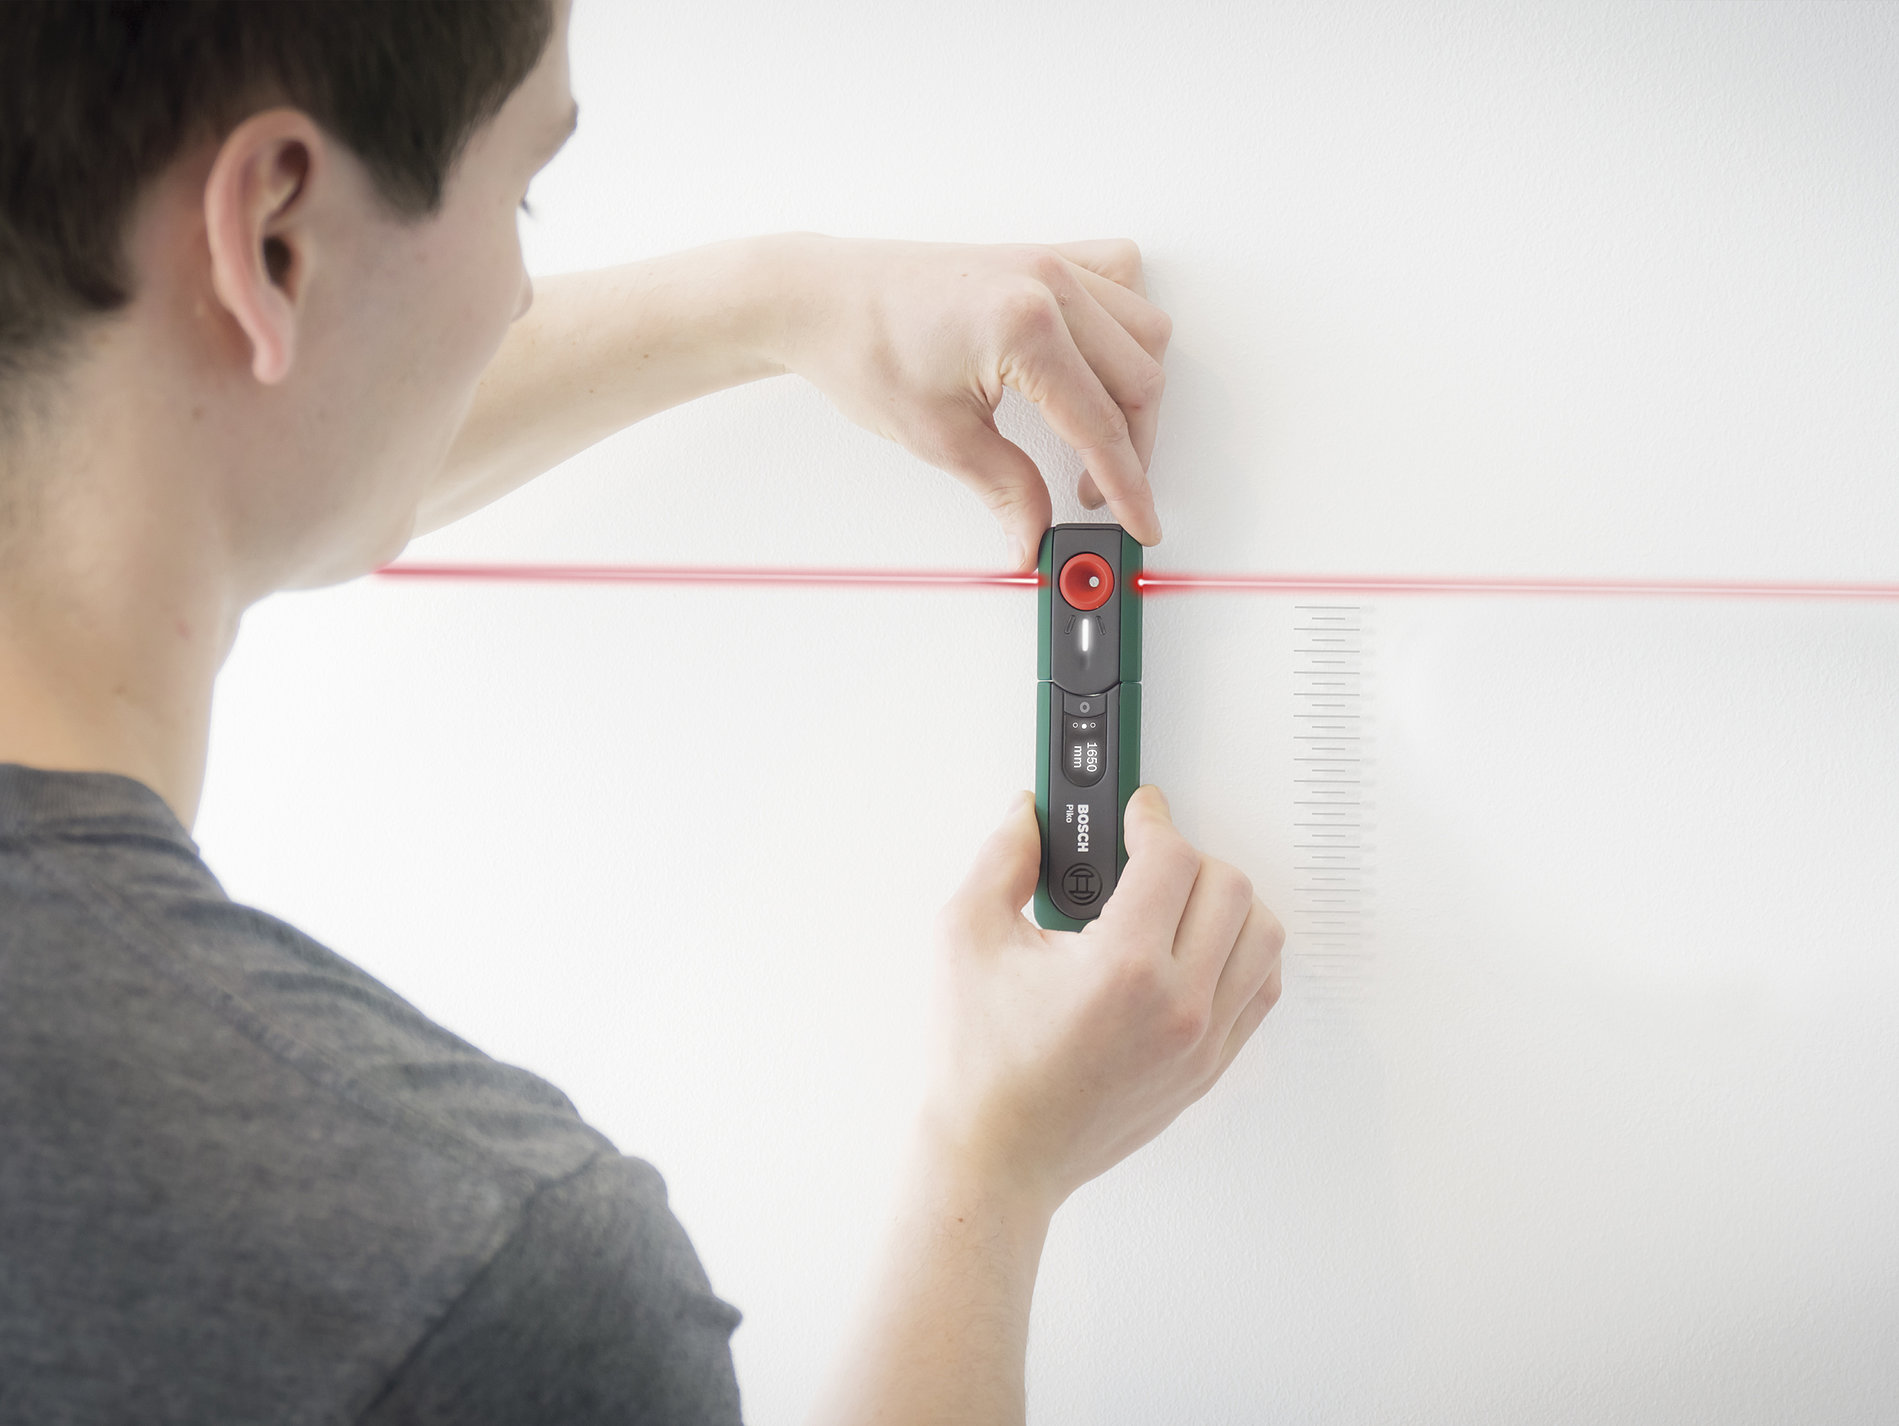 Piko - The new measuring and aligning tool | Red Dot Design Award